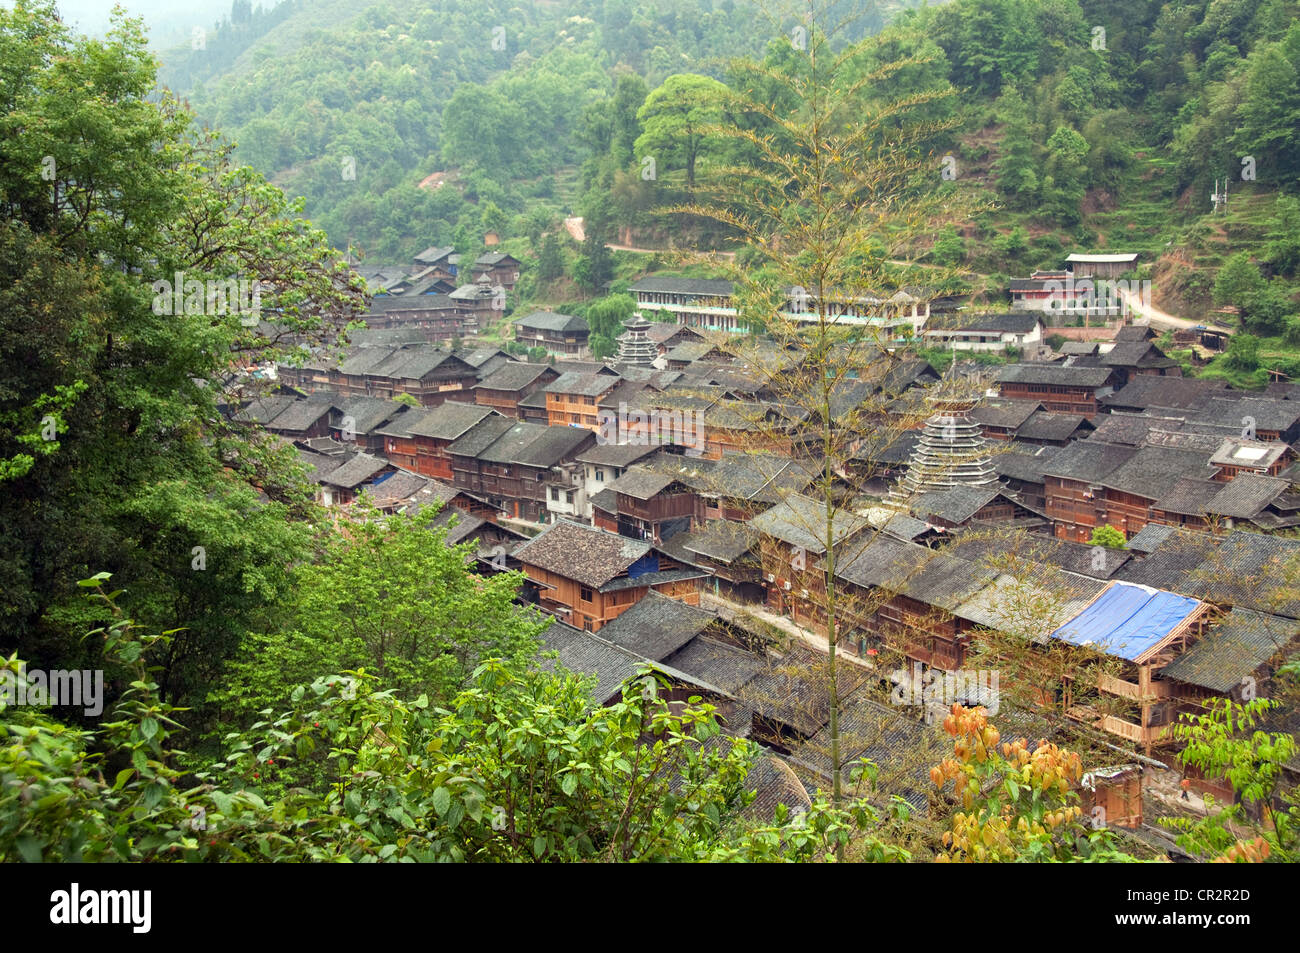 Zhaoxing Dong Village roofs seen from above, Southern China Stock Photo